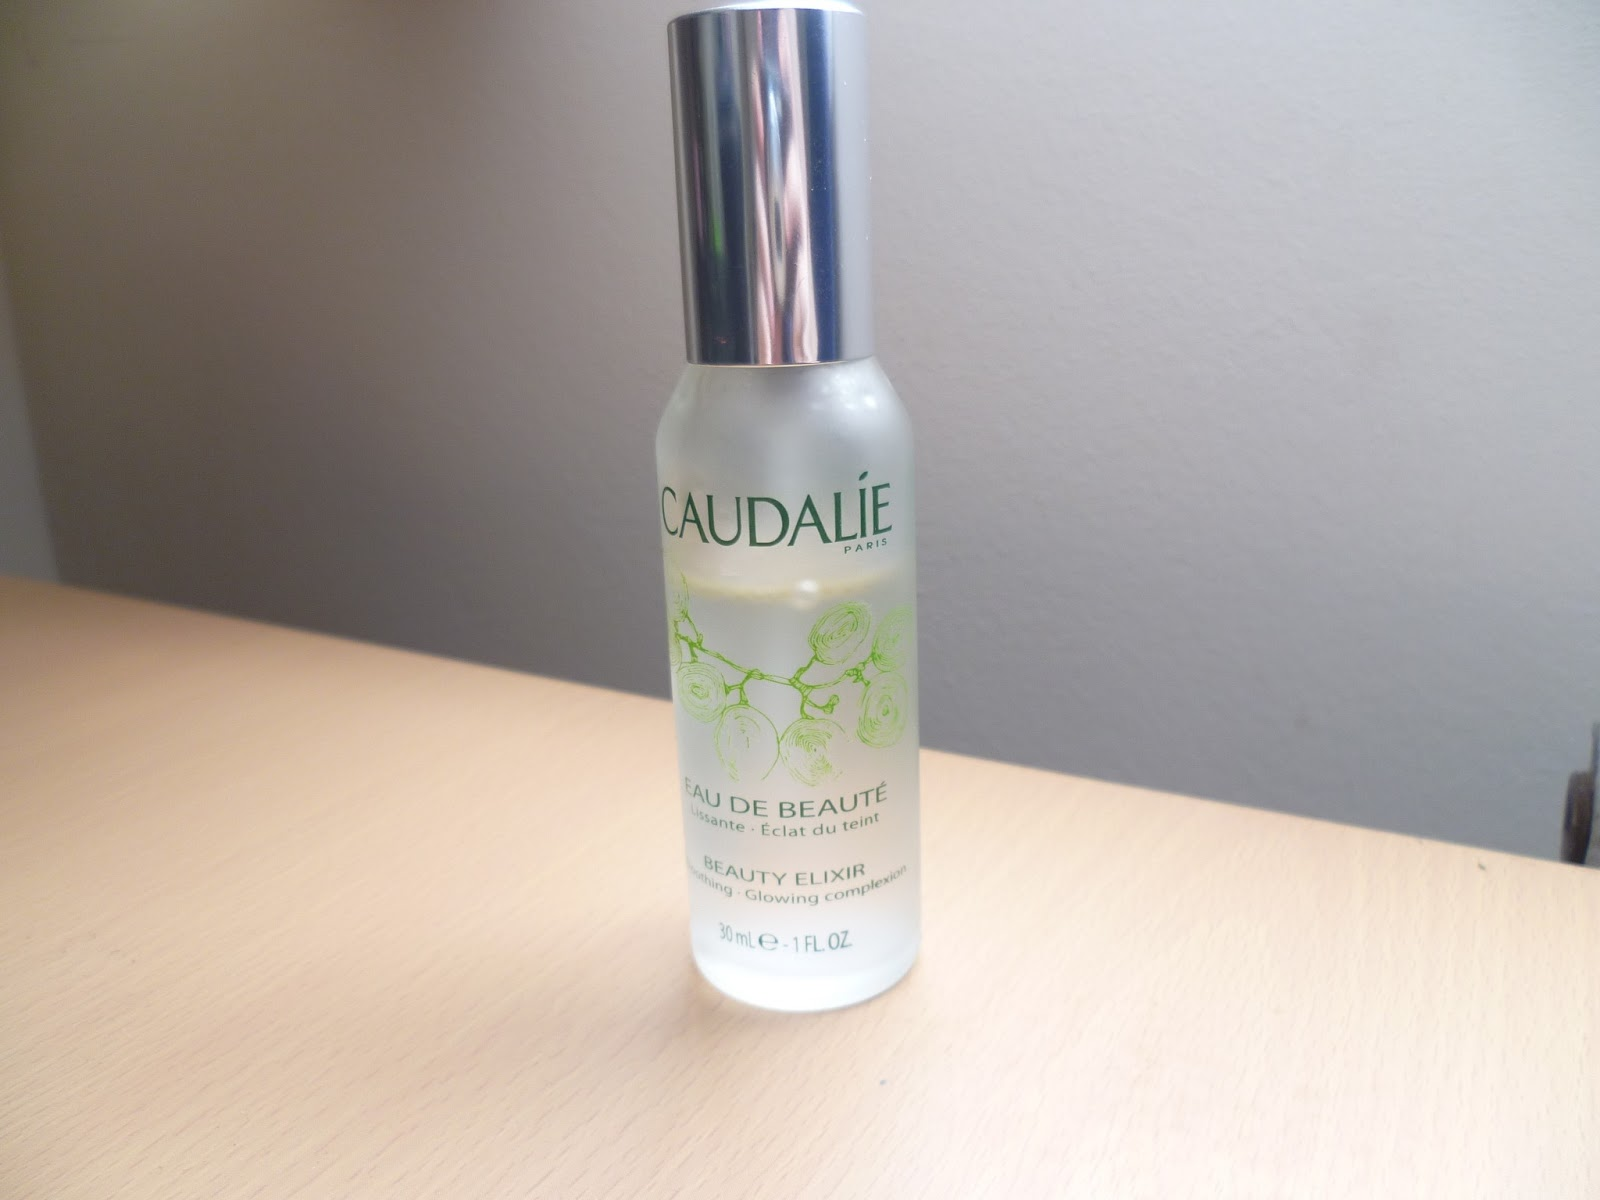 Caudalie facial products apologise